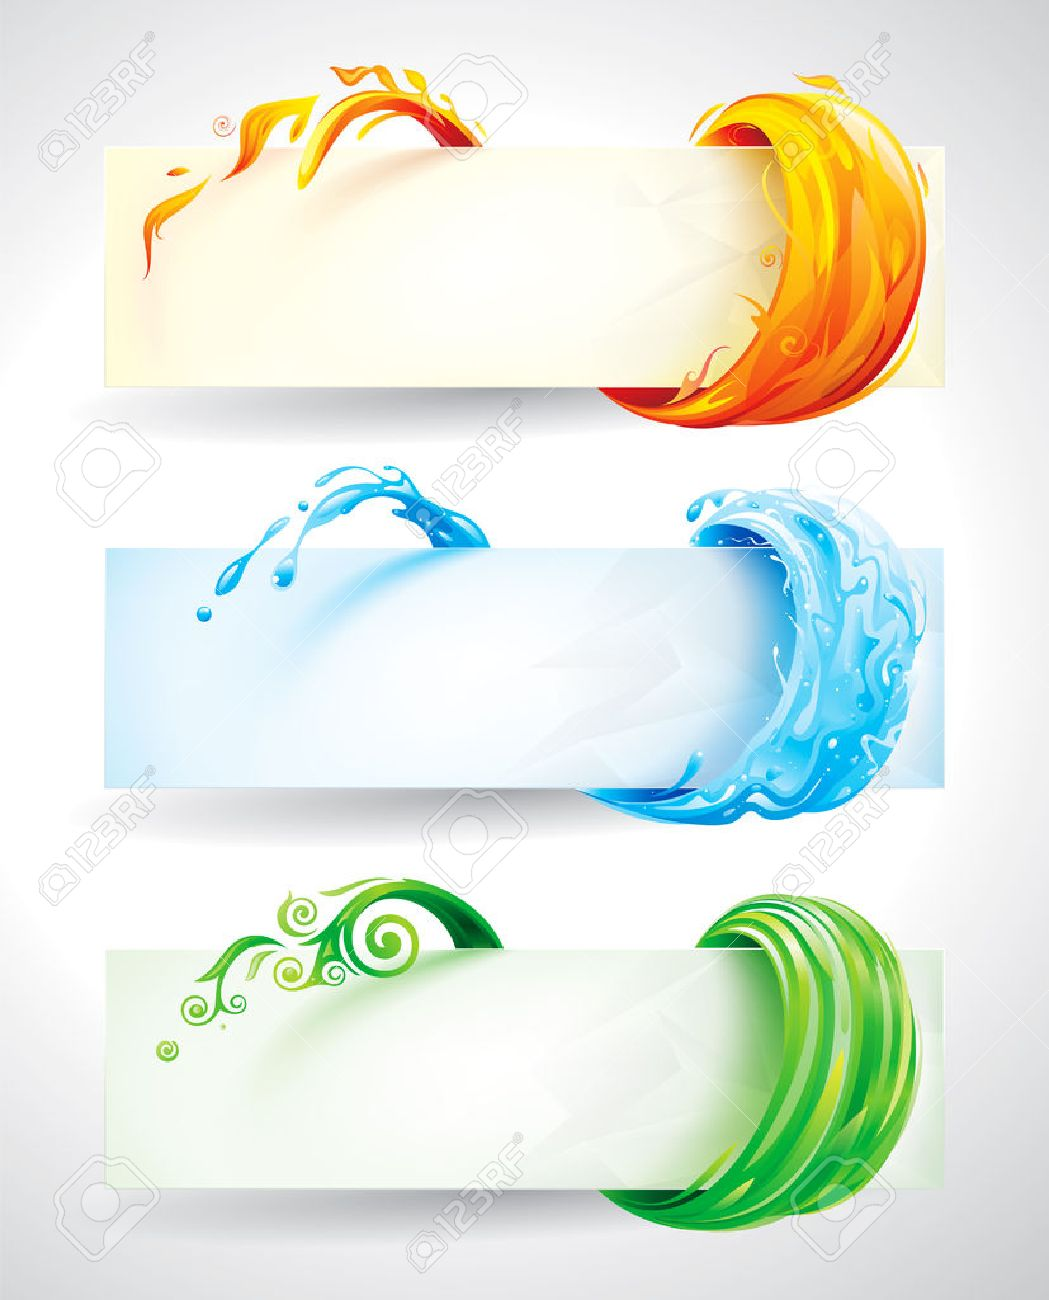 Set of fire, water and green elements banner background. - 31057592